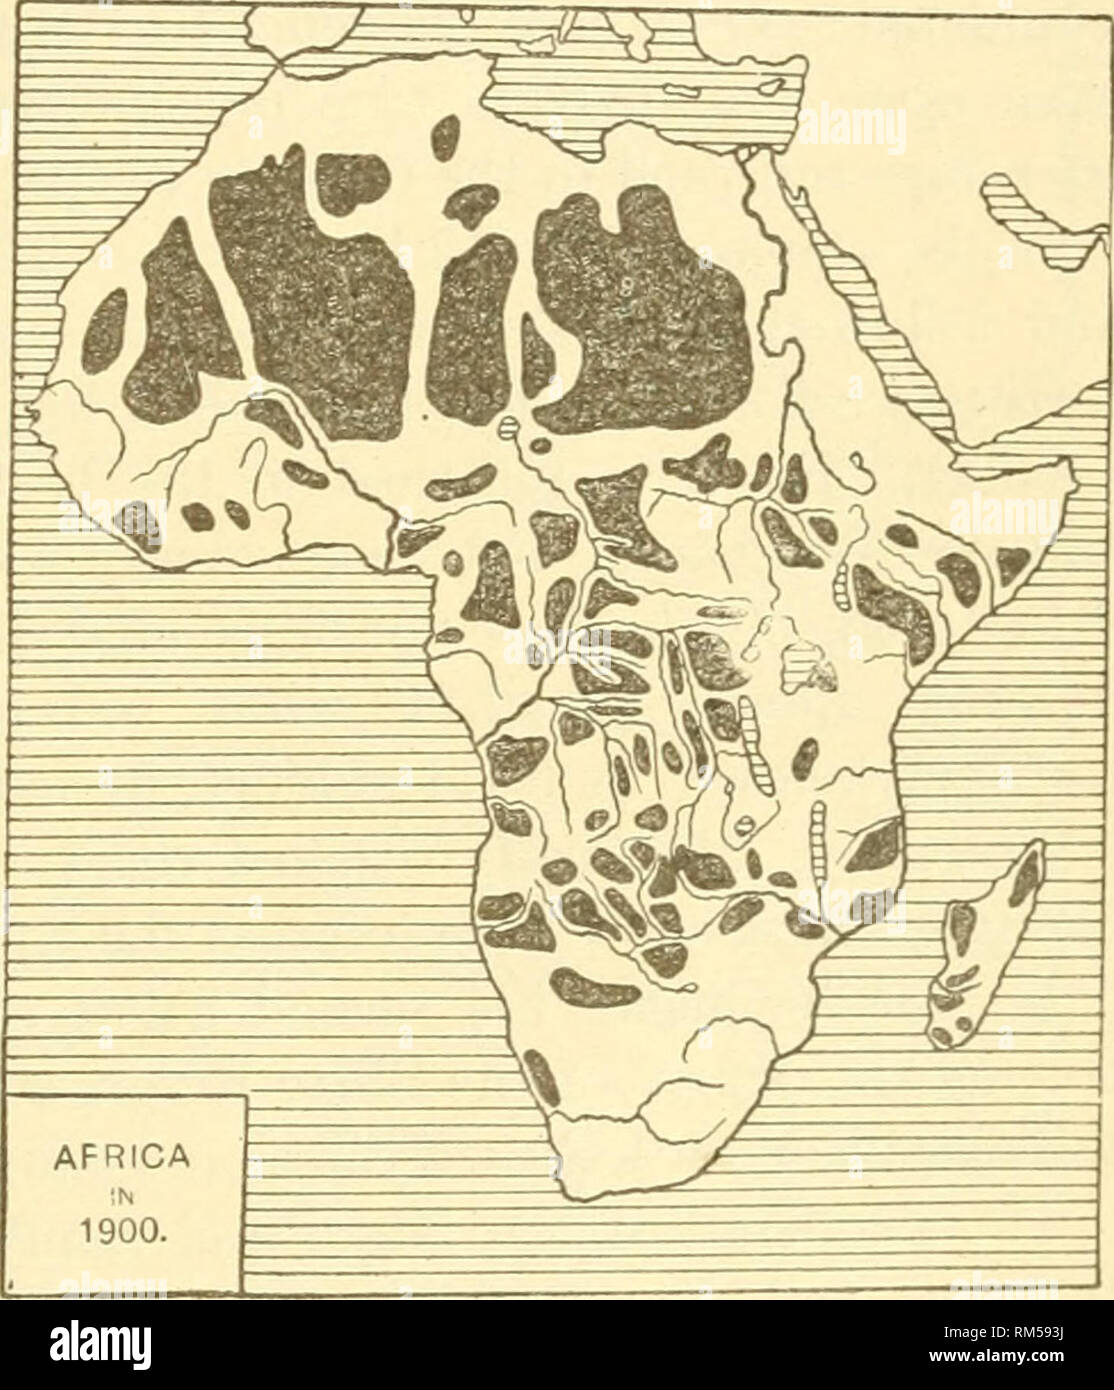 . Annual report of the Board of Regents of the Smithsonian Institution. Smithsonian Institution; Smithsonian Institution. Archives; Discoveries in science. GEOGRAPHIC CONQUESTS OF THE NINETEENTH CENTURY. 419 During- nearly tifty years after the death of Muno-o Park, explora- tion in Africa Avas confined to the Great Sahara Desert. Denhani and Clapperton in 1822-1824 pushed southward from Fezzan through the burning sands and discovered Lake Tchad, then to Bornu, and thence to Sokoto on the Niger. Several years later Clapperton ascended the Niger from its mouth to Sokoto, where he died. Another  - Stock Image